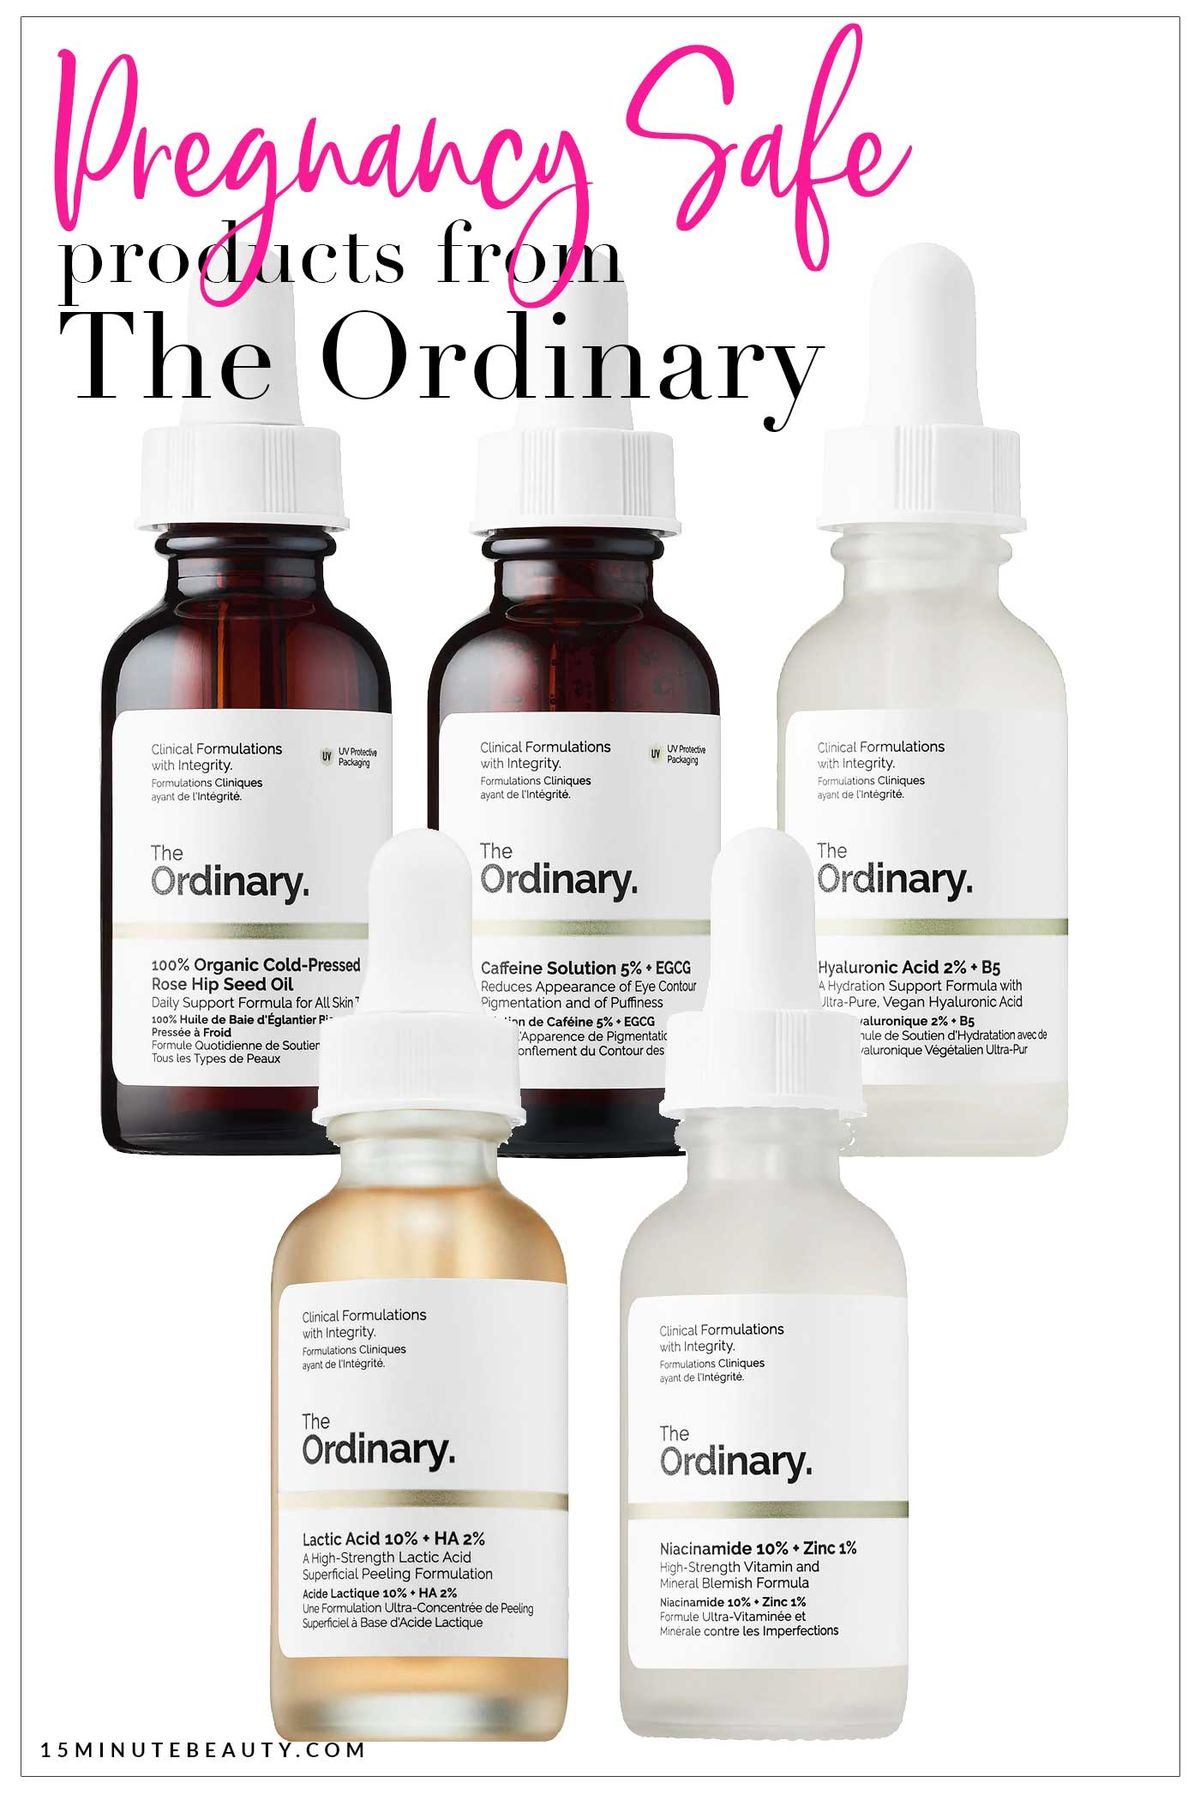 Pregnancy Safe Skincare from The Ordinary